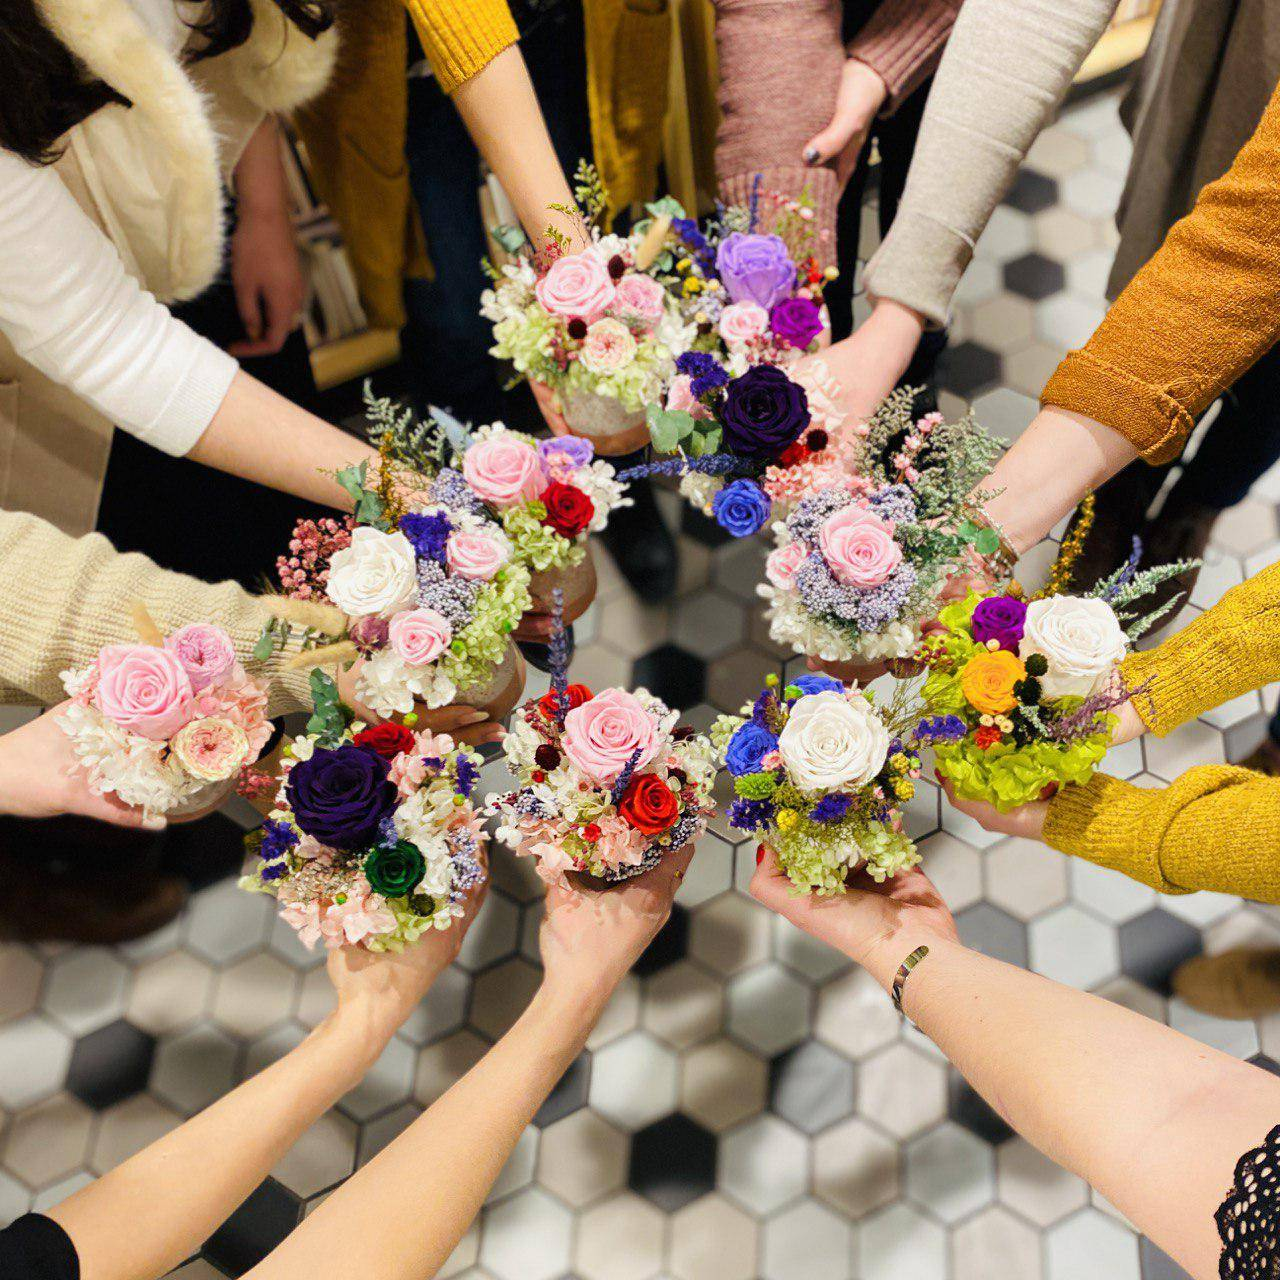 2021.1.22 Global Gross Margin and Inventory Team Flower Arranging Workshop